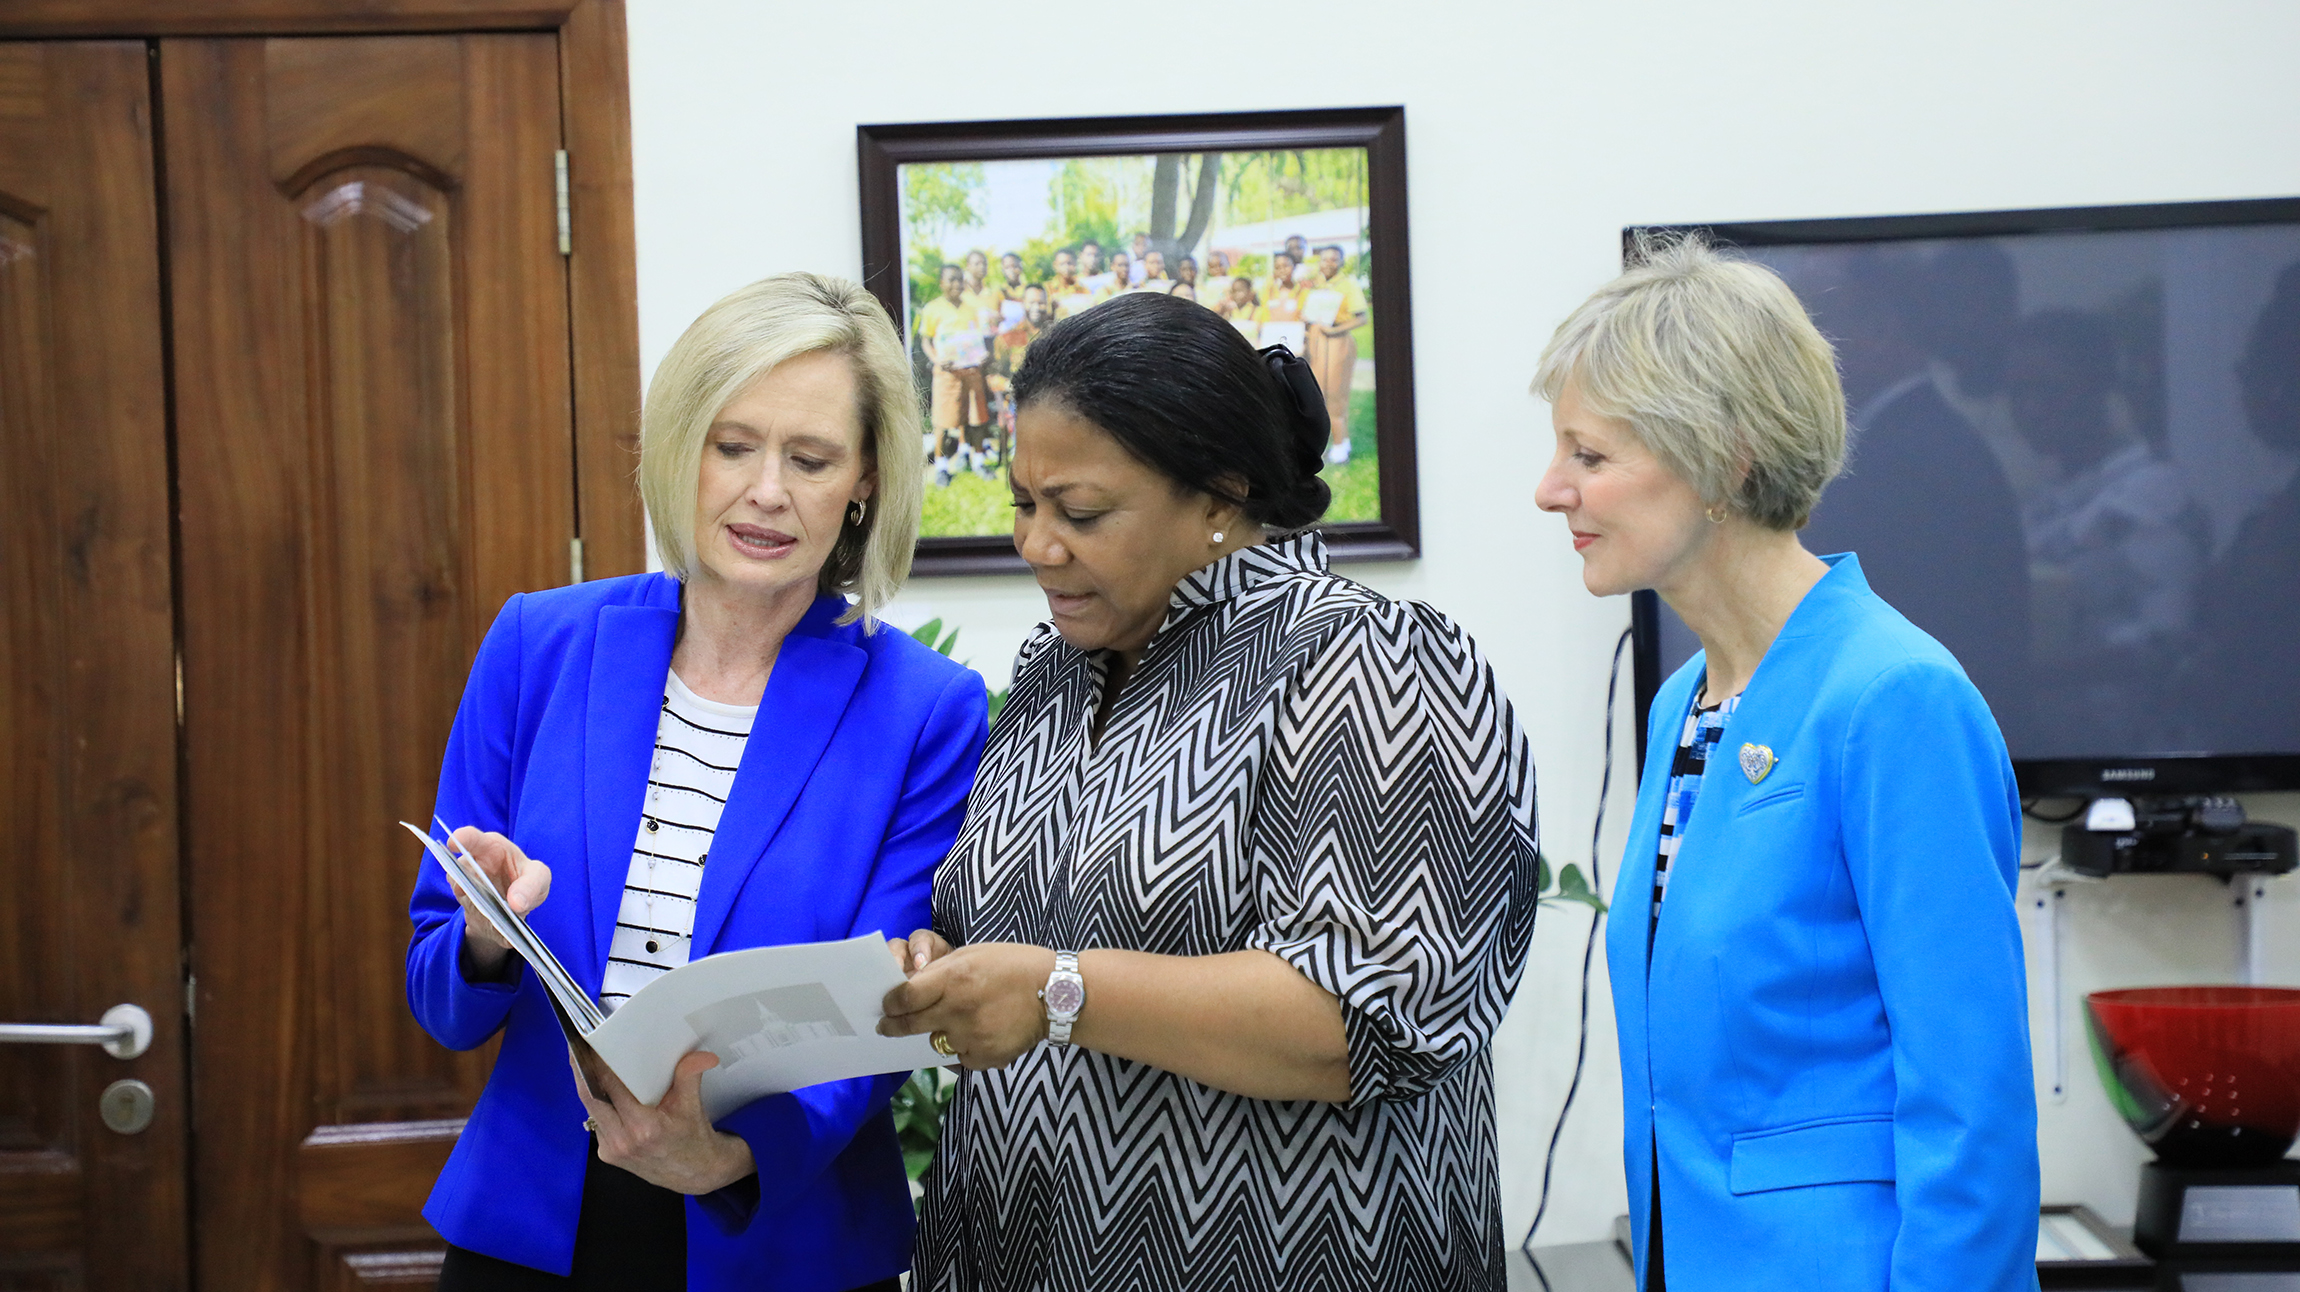 Sister Bonnie H. Cordon, left, and Sister Jean B. Bingham, right, visit Rebecca Naa Okaikor Akufo-Addo, the first lady of the Republic of Ghana, at North Ridge in Accra, Friday, March 1, 2019.